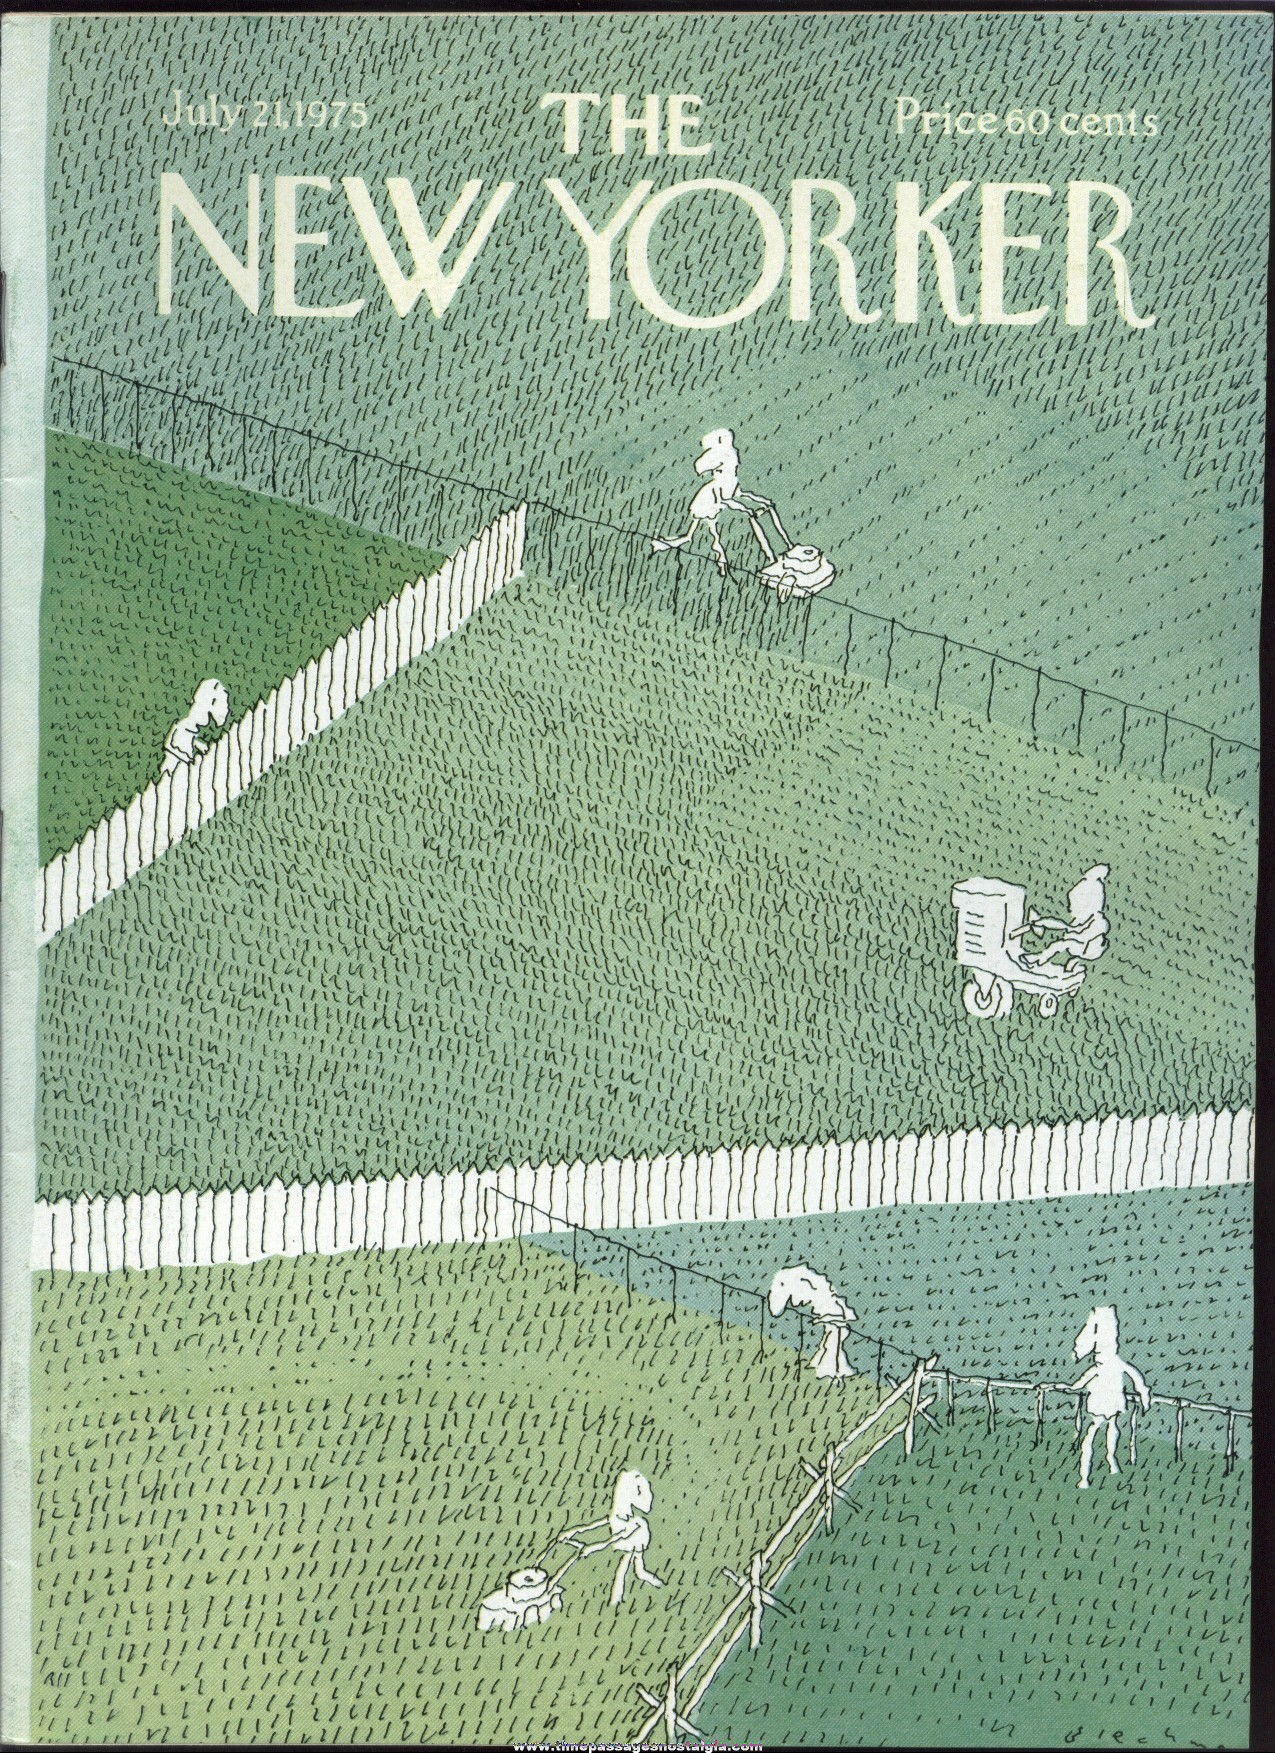 New Yorker Magazine - July 21, 1975 - Cover by R. O. Blechman